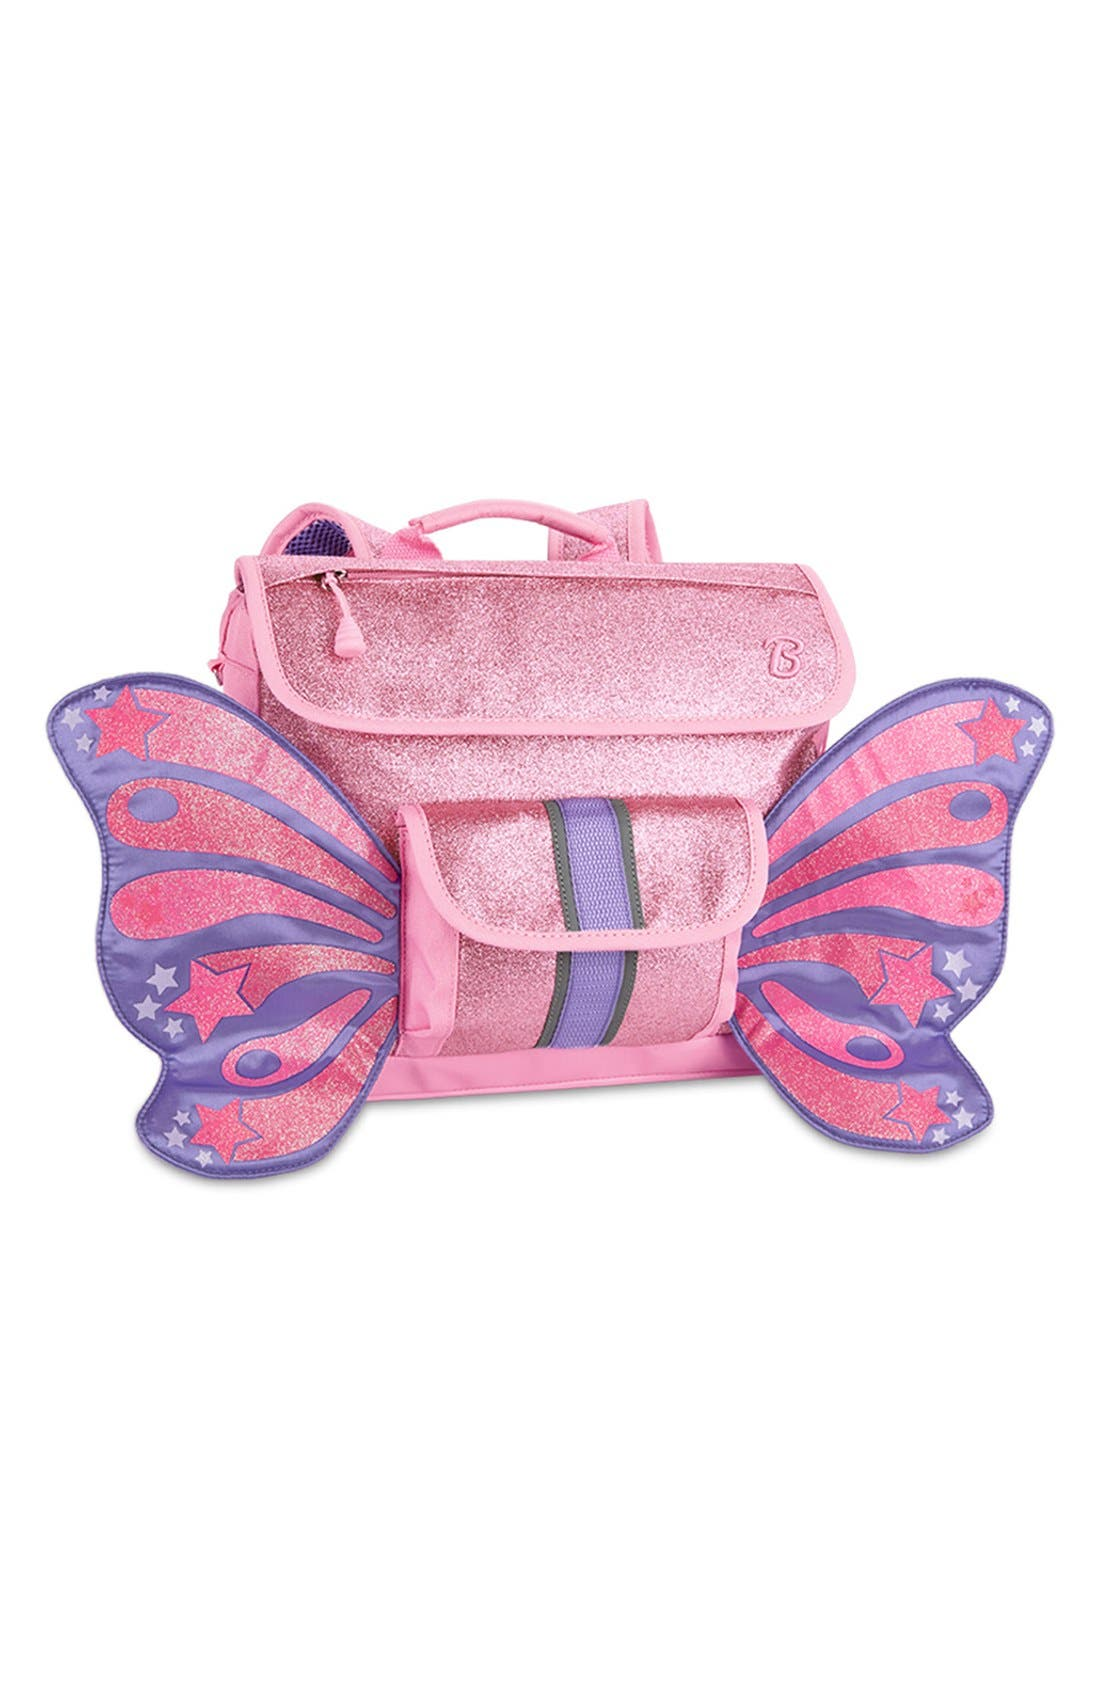 Alternate Image 1 Selected - Bixbee 'Small Sparkalicious Butterflyer' Backpack (Kids)